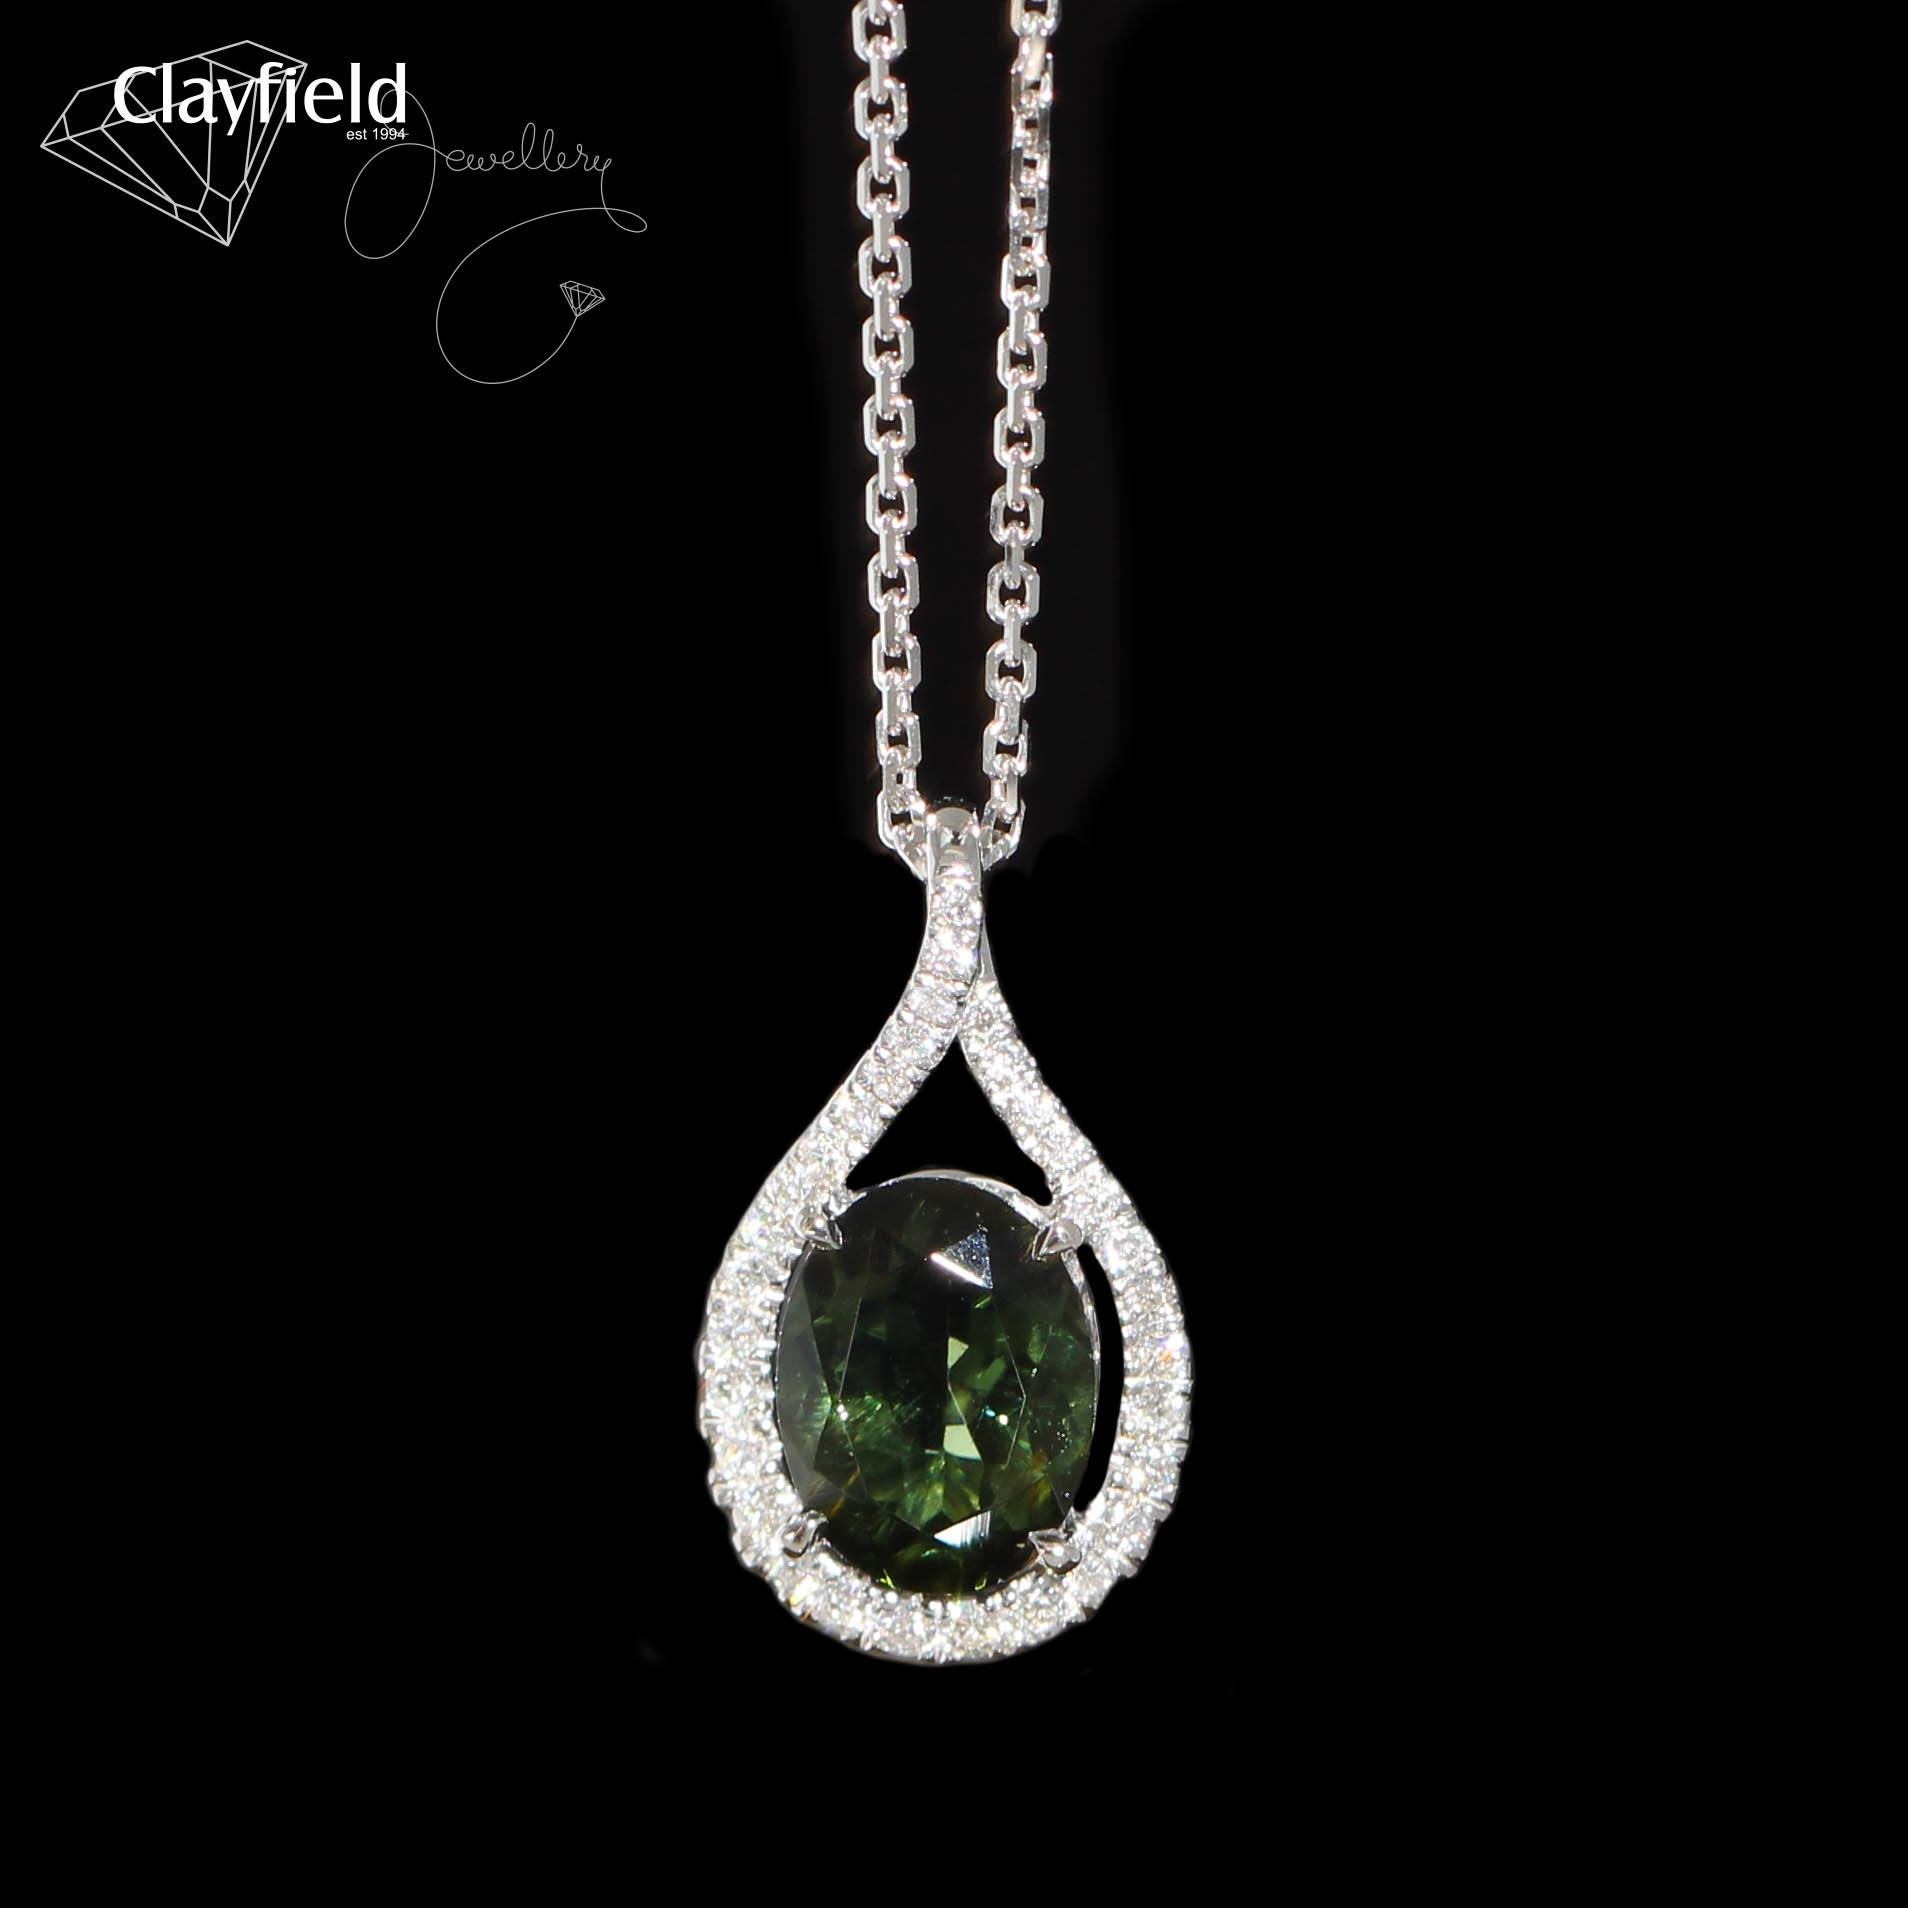 green tourmaline necklace with diamonds